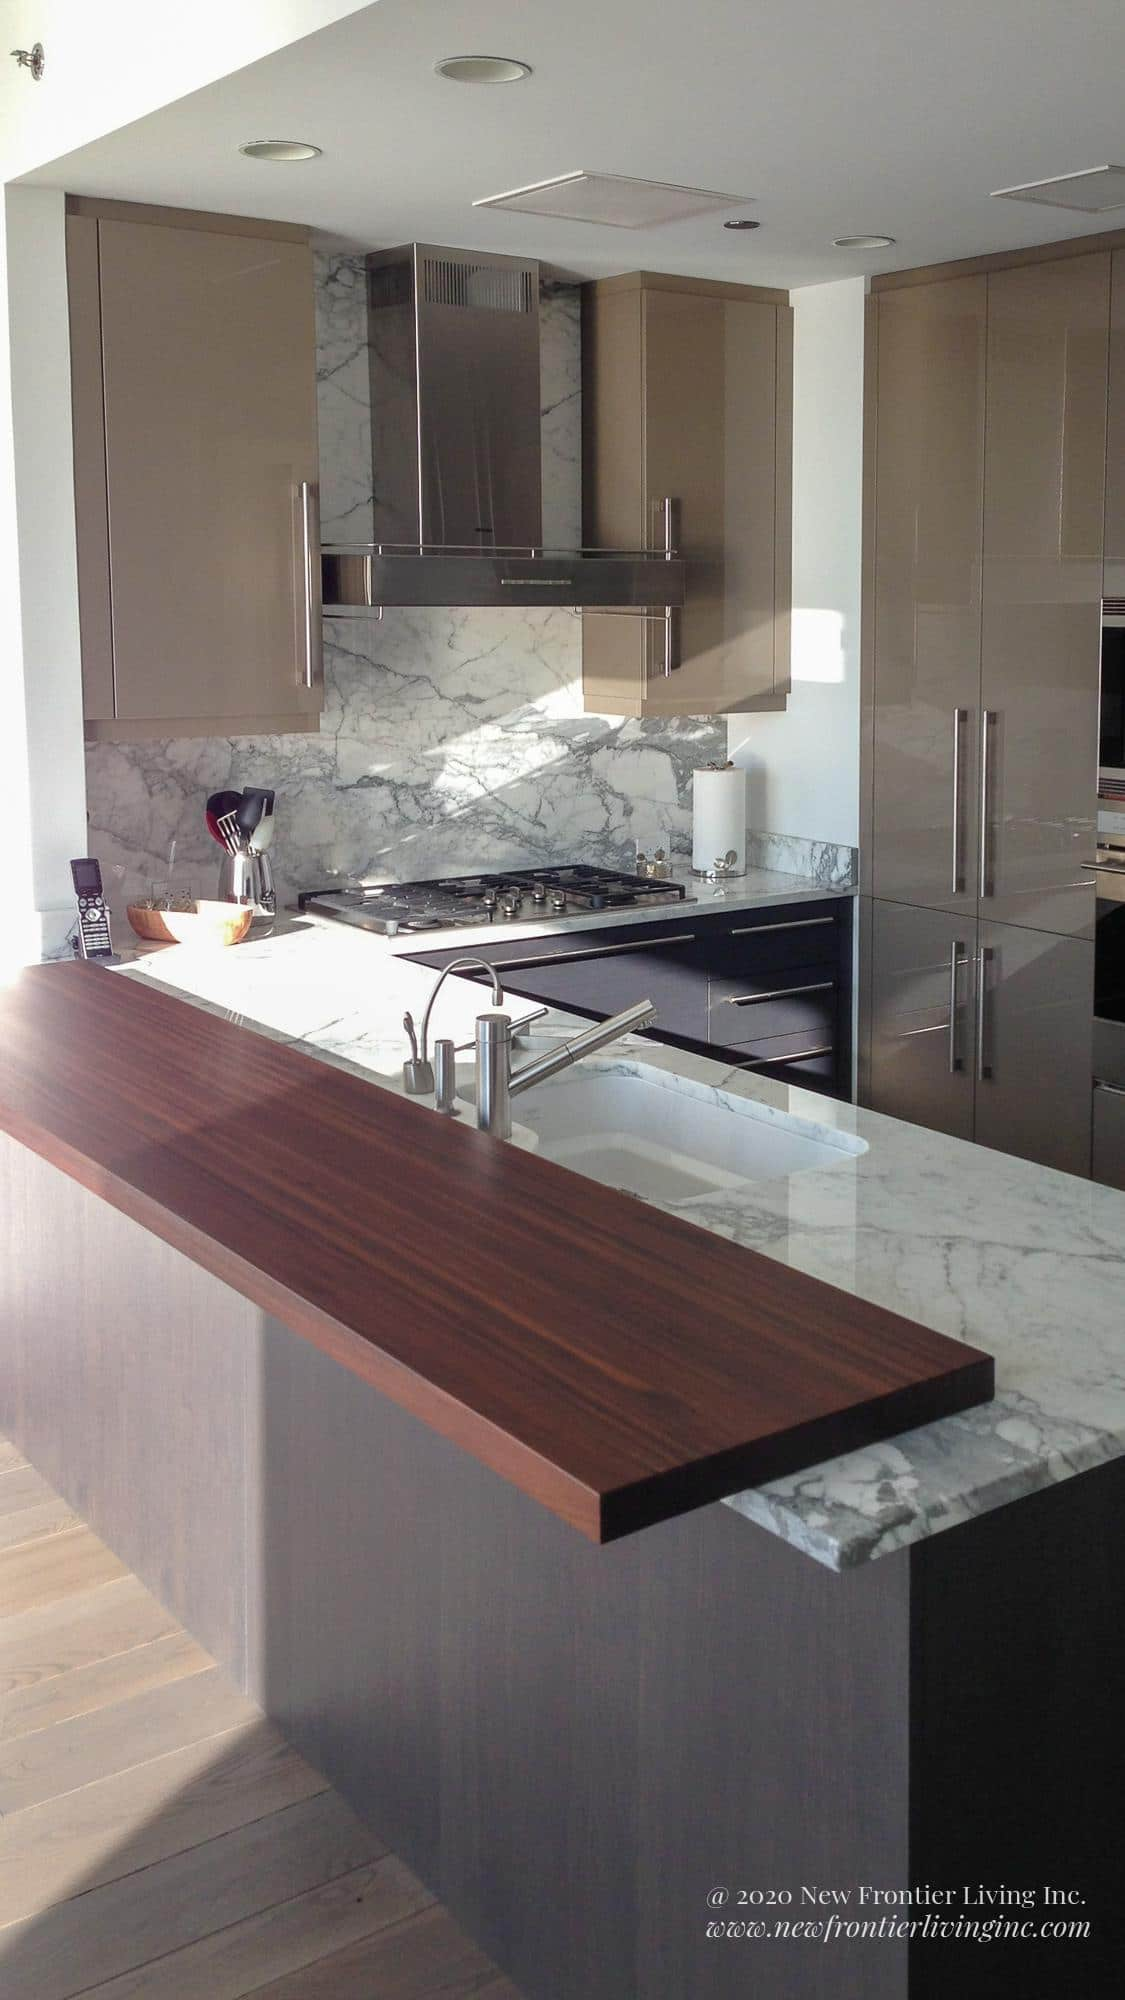 Dark gray kitchen island with white granite counter and extended brown ledge close-up